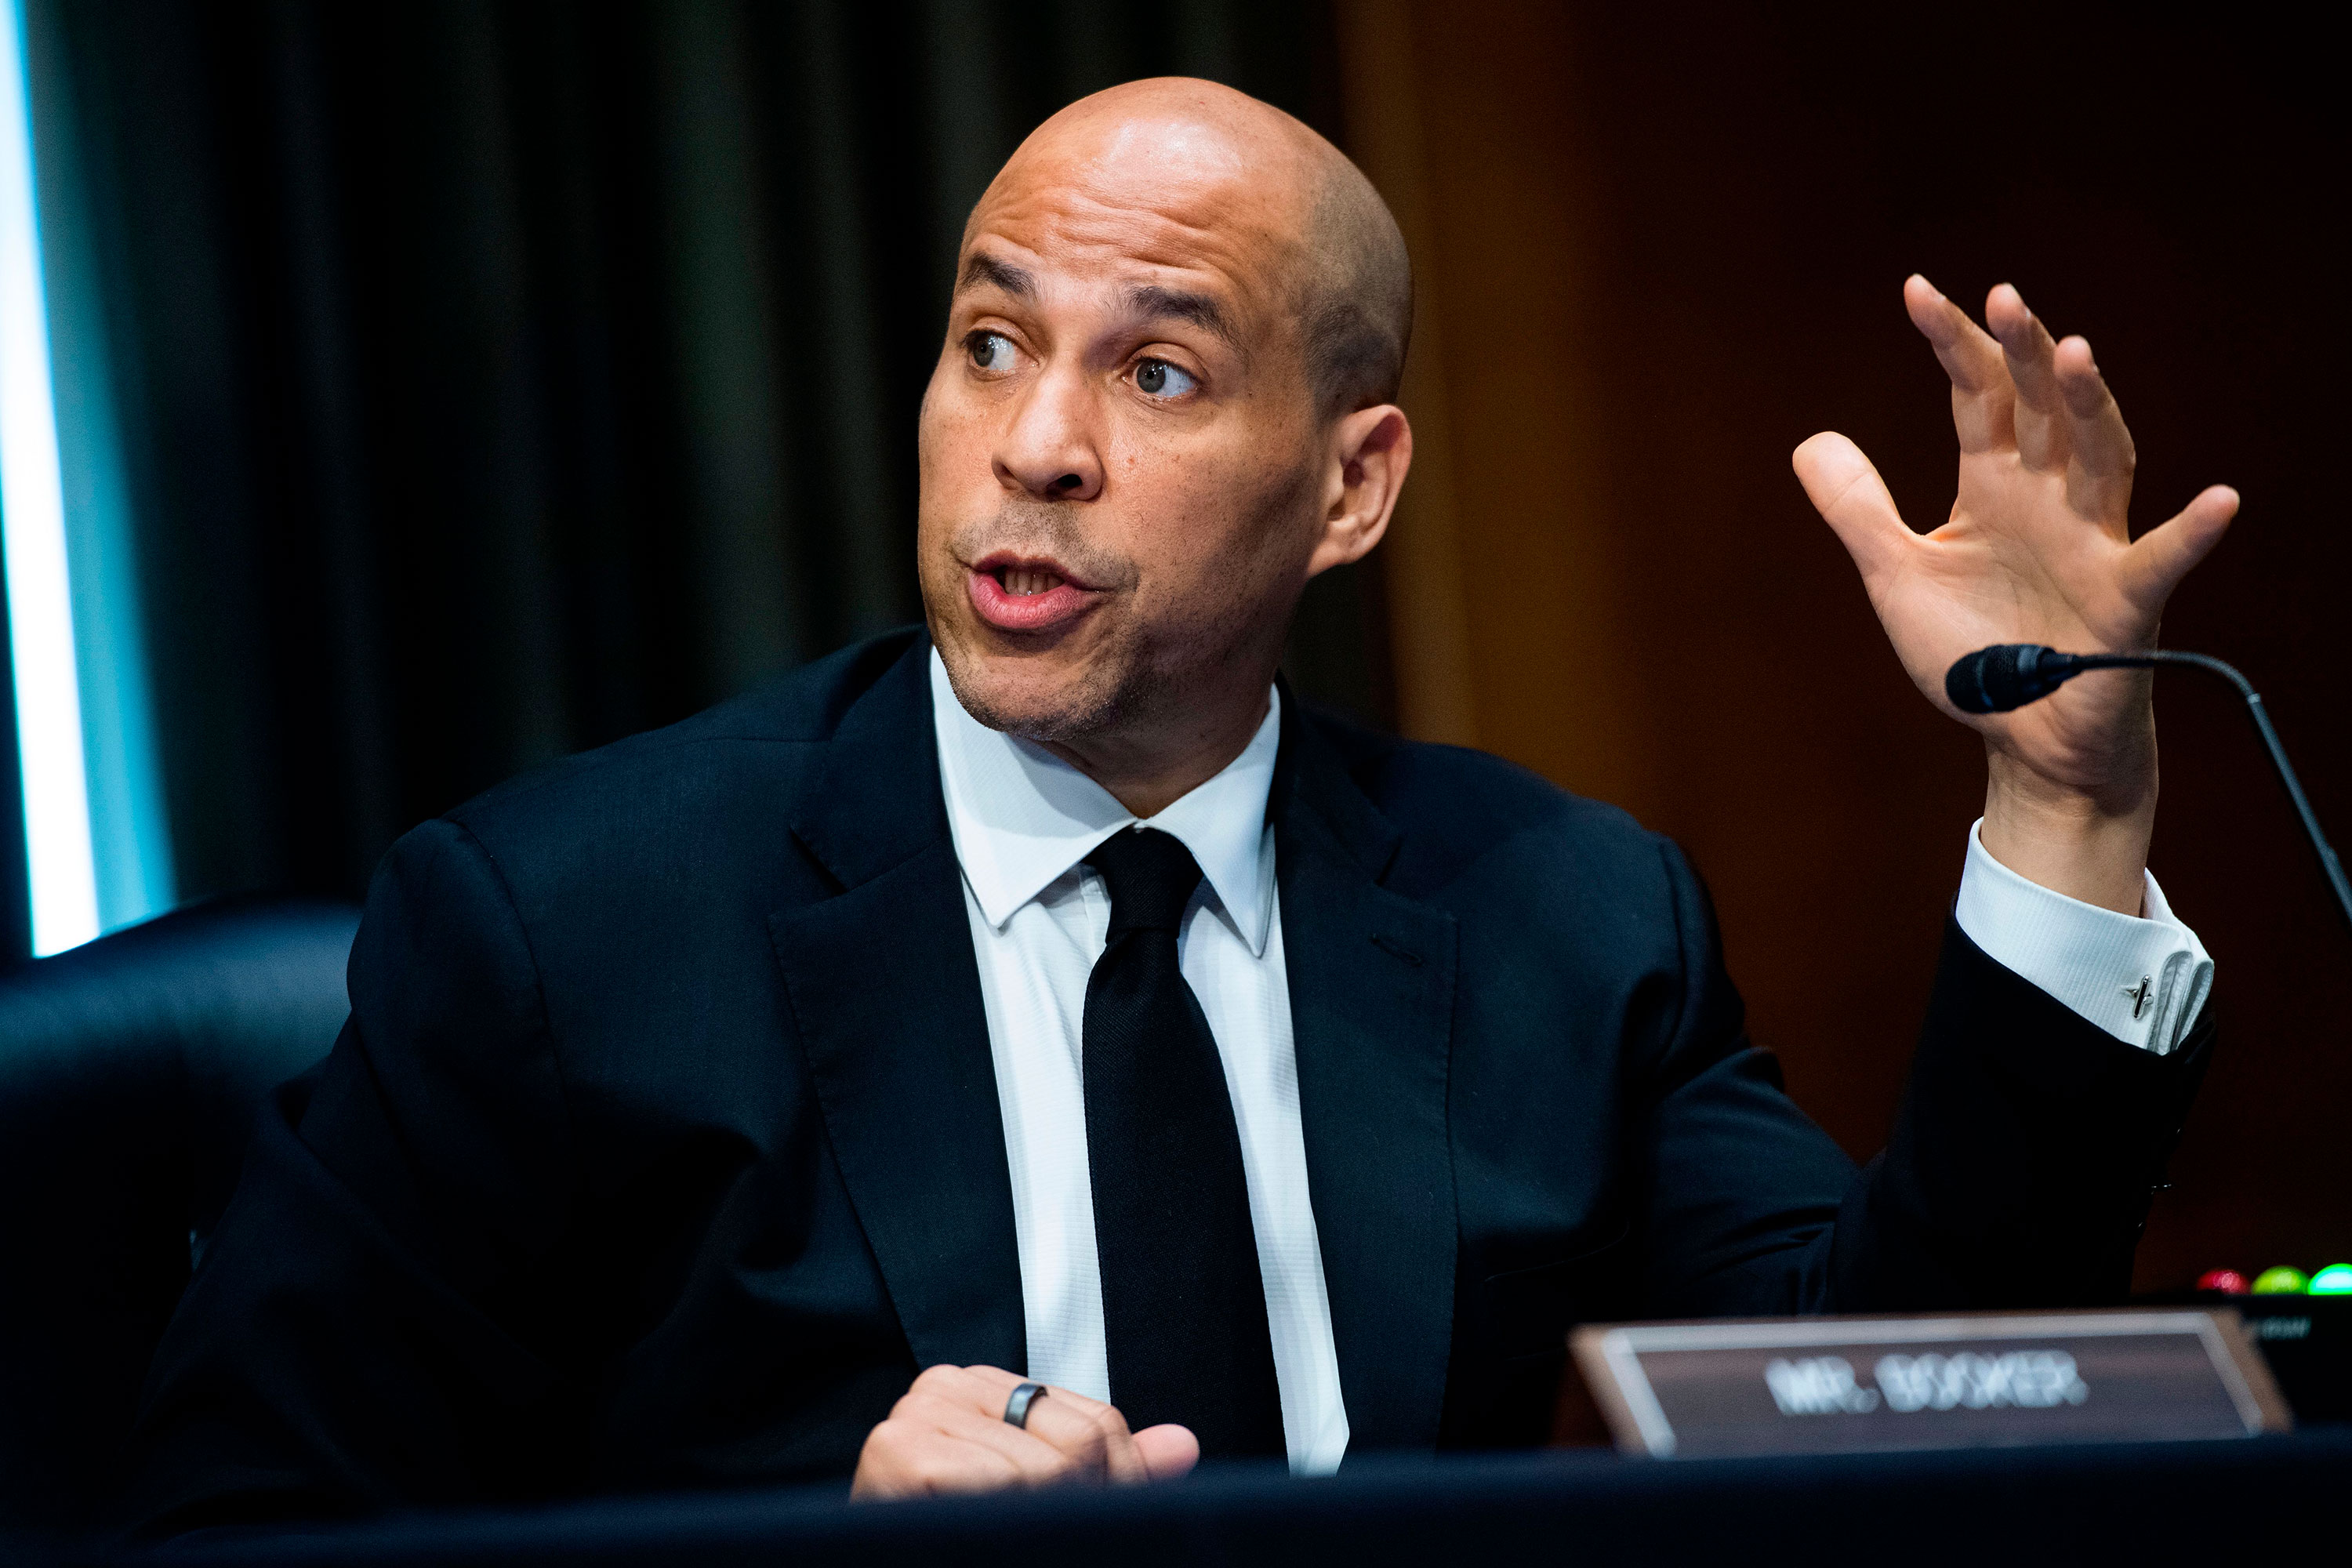 Sen. Cory Booker, D-NJ, speaks during a hearing on June 2 in Washington.